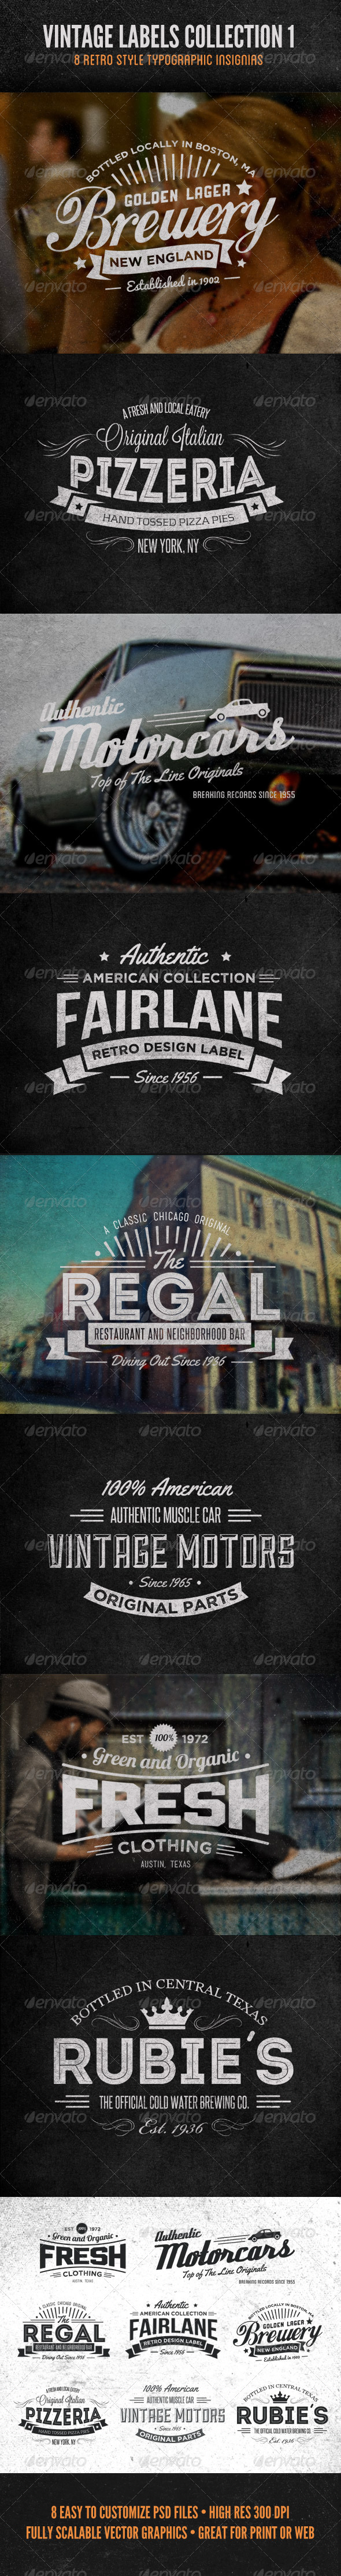 GraphicRiver Vintage Labels and Logos Collection 1 5383666